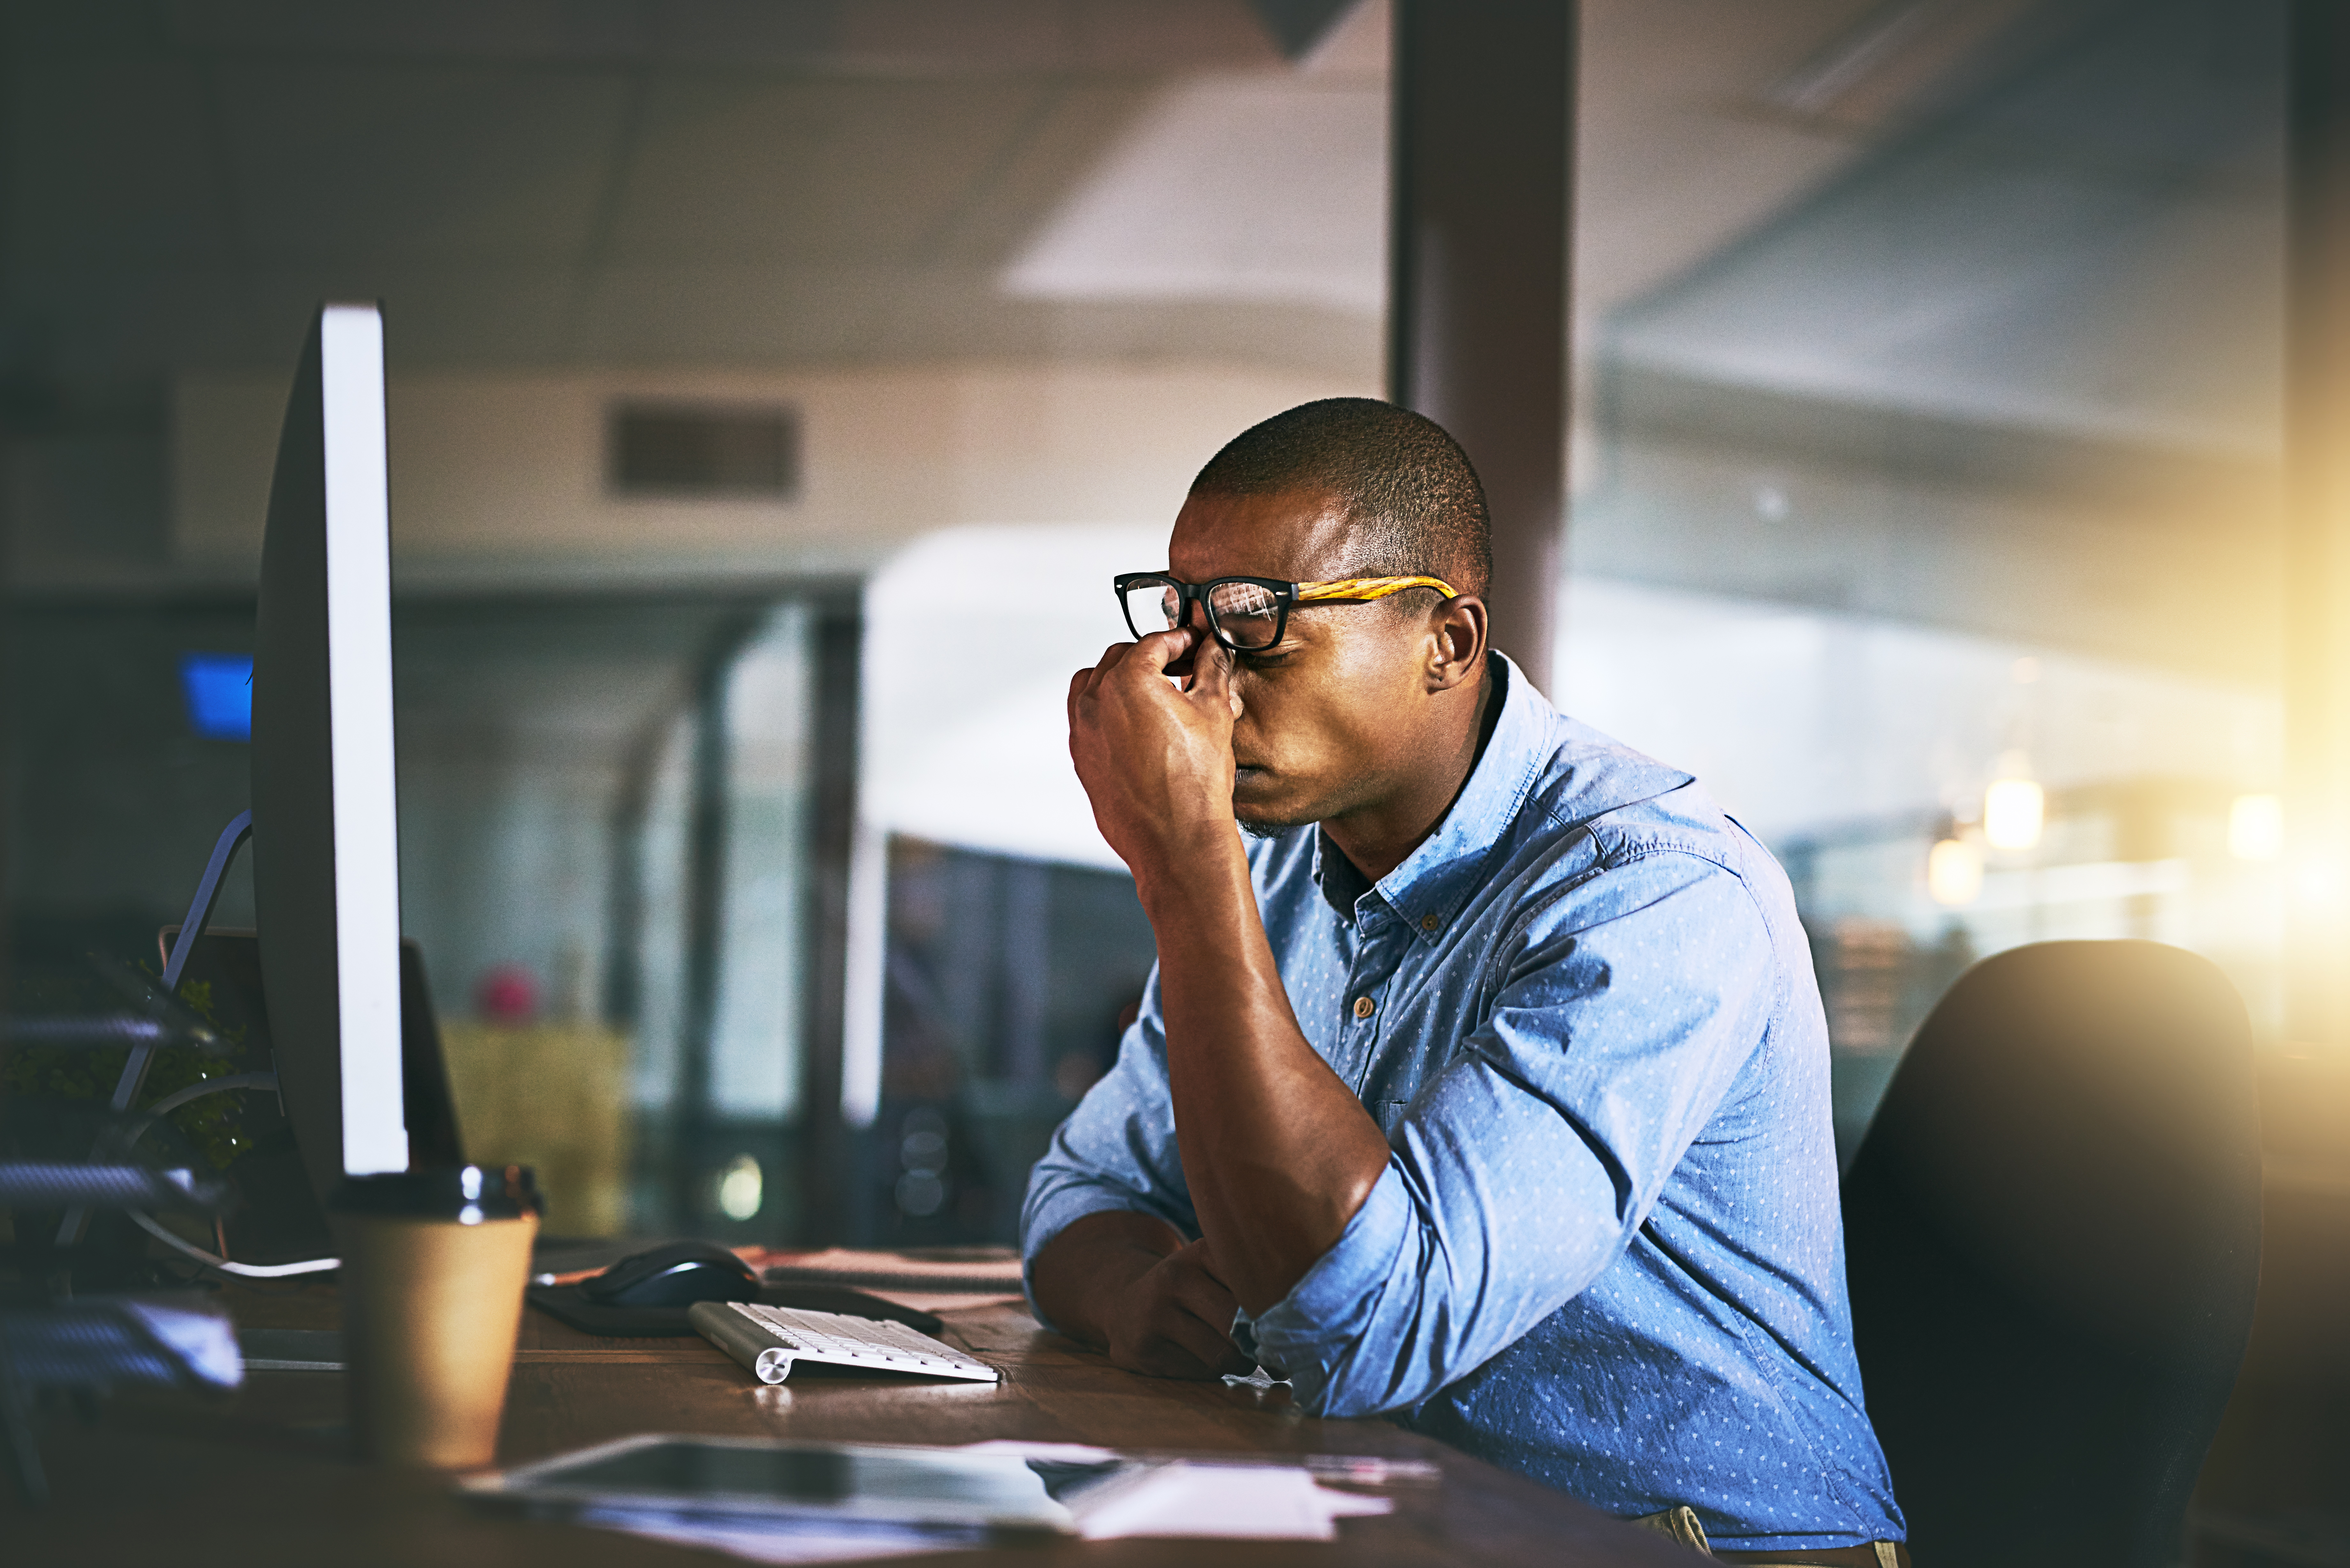 Can T Do My Job Because Of Anxiety how to handle stress at work - harvard health blog - harvard